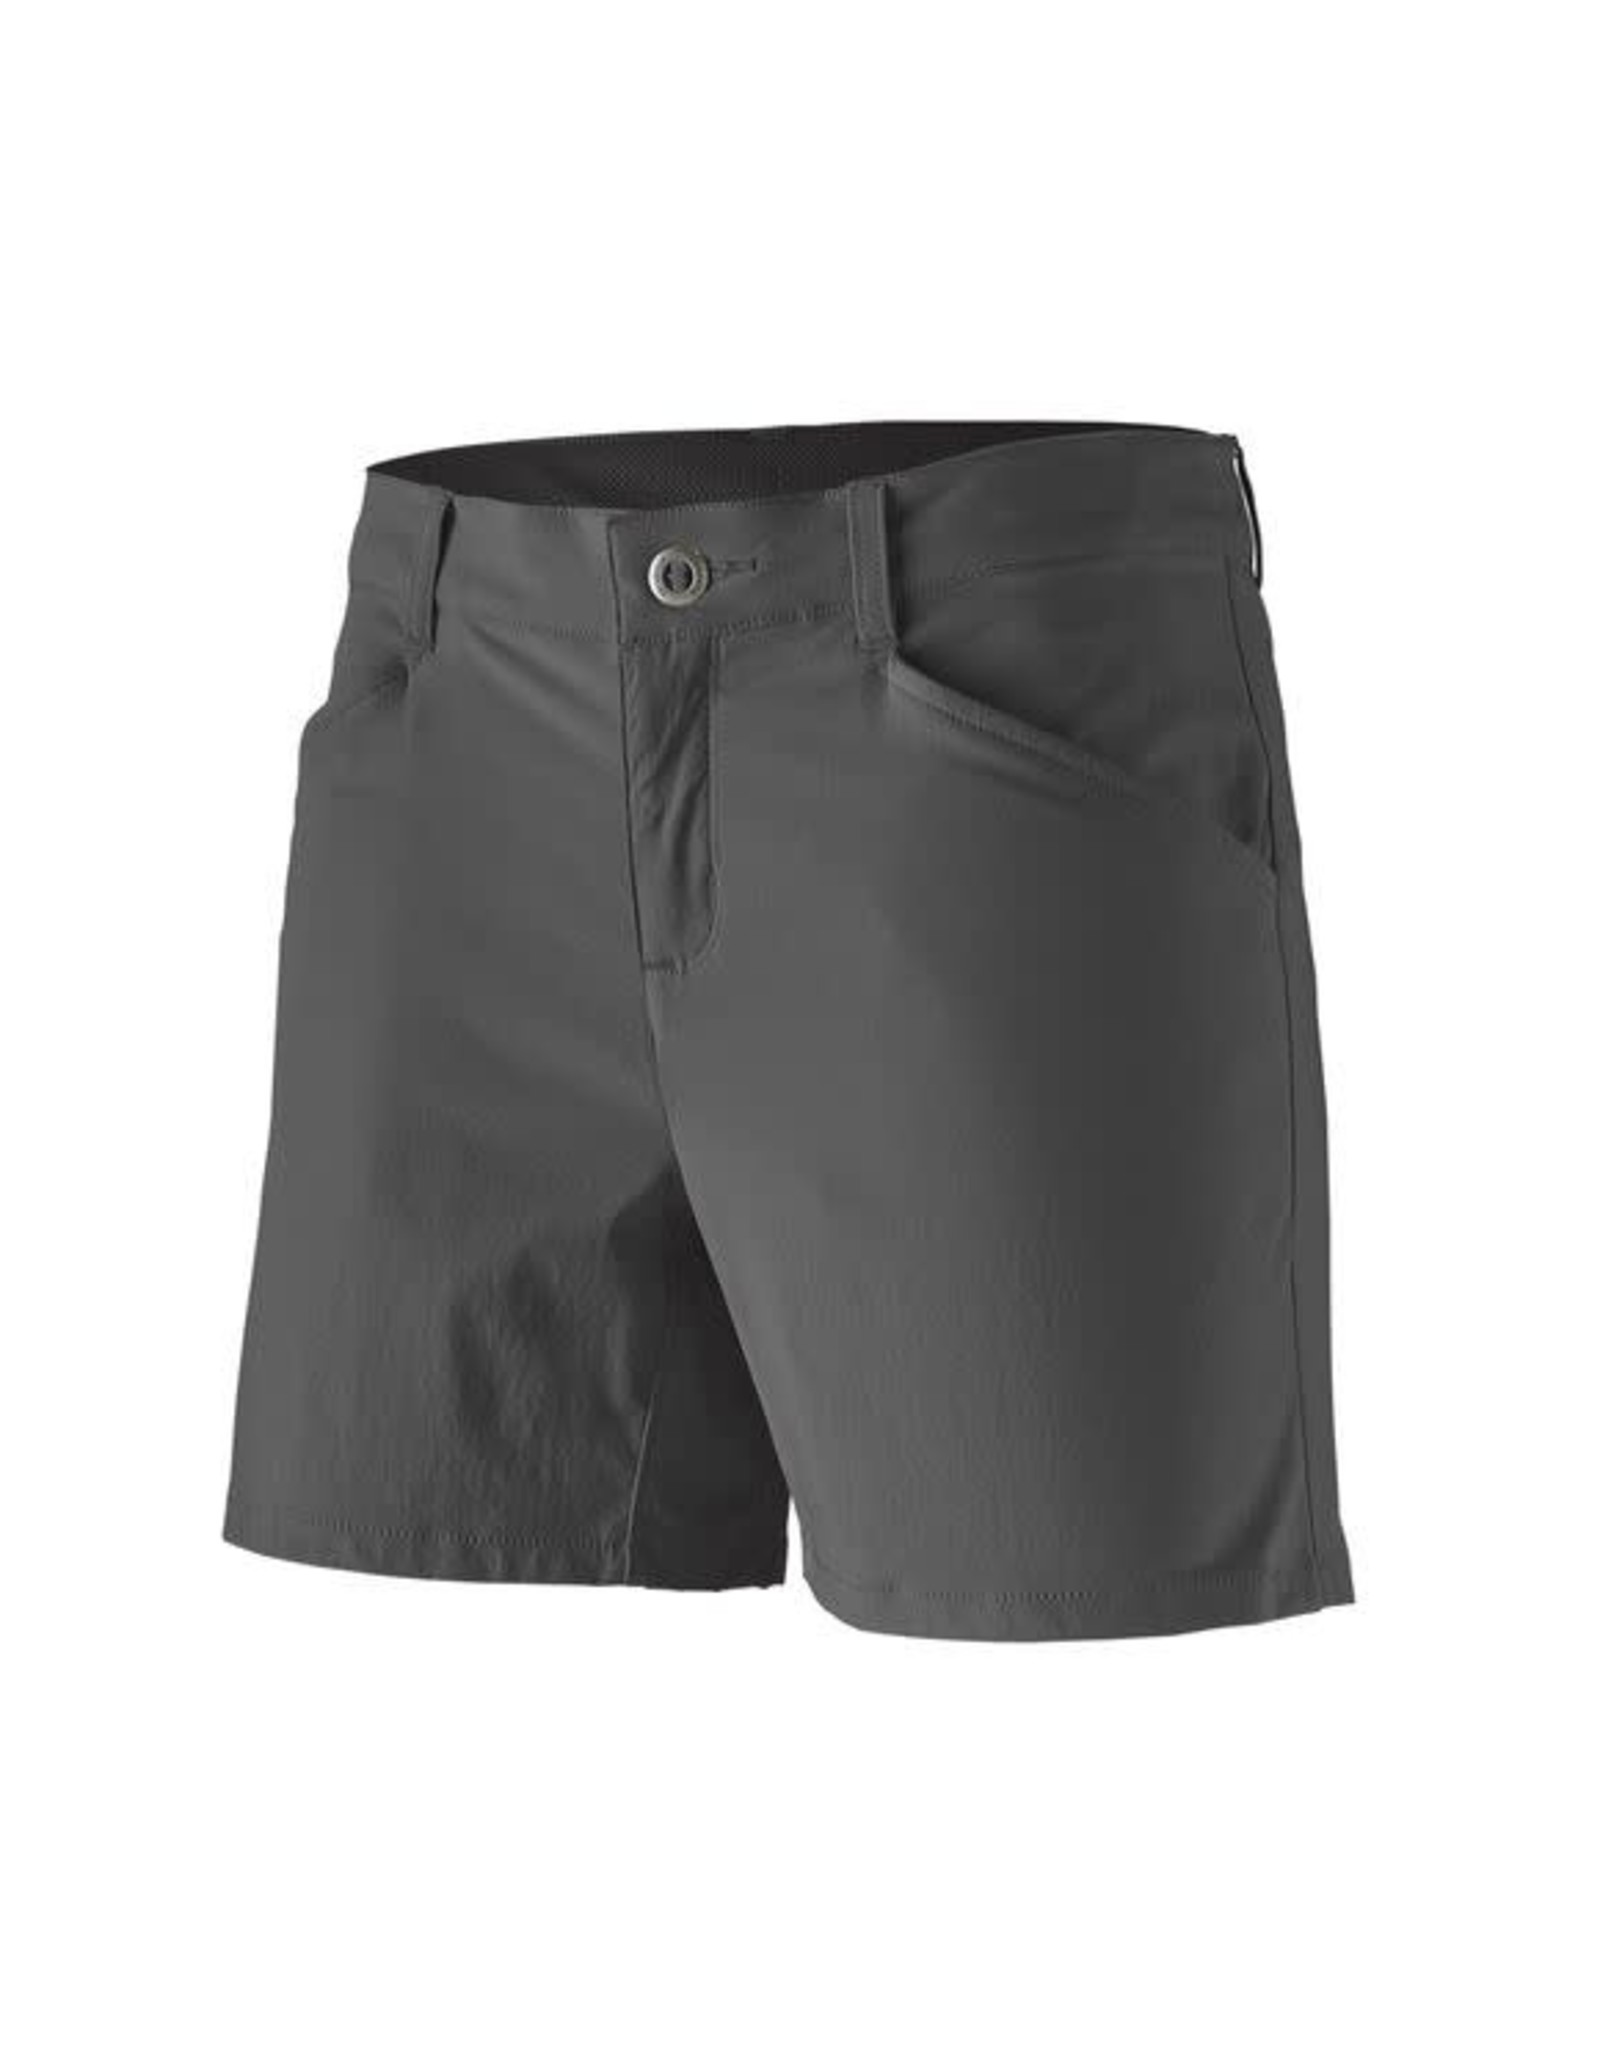 Patagonia W's Quandary Shorts - 5in